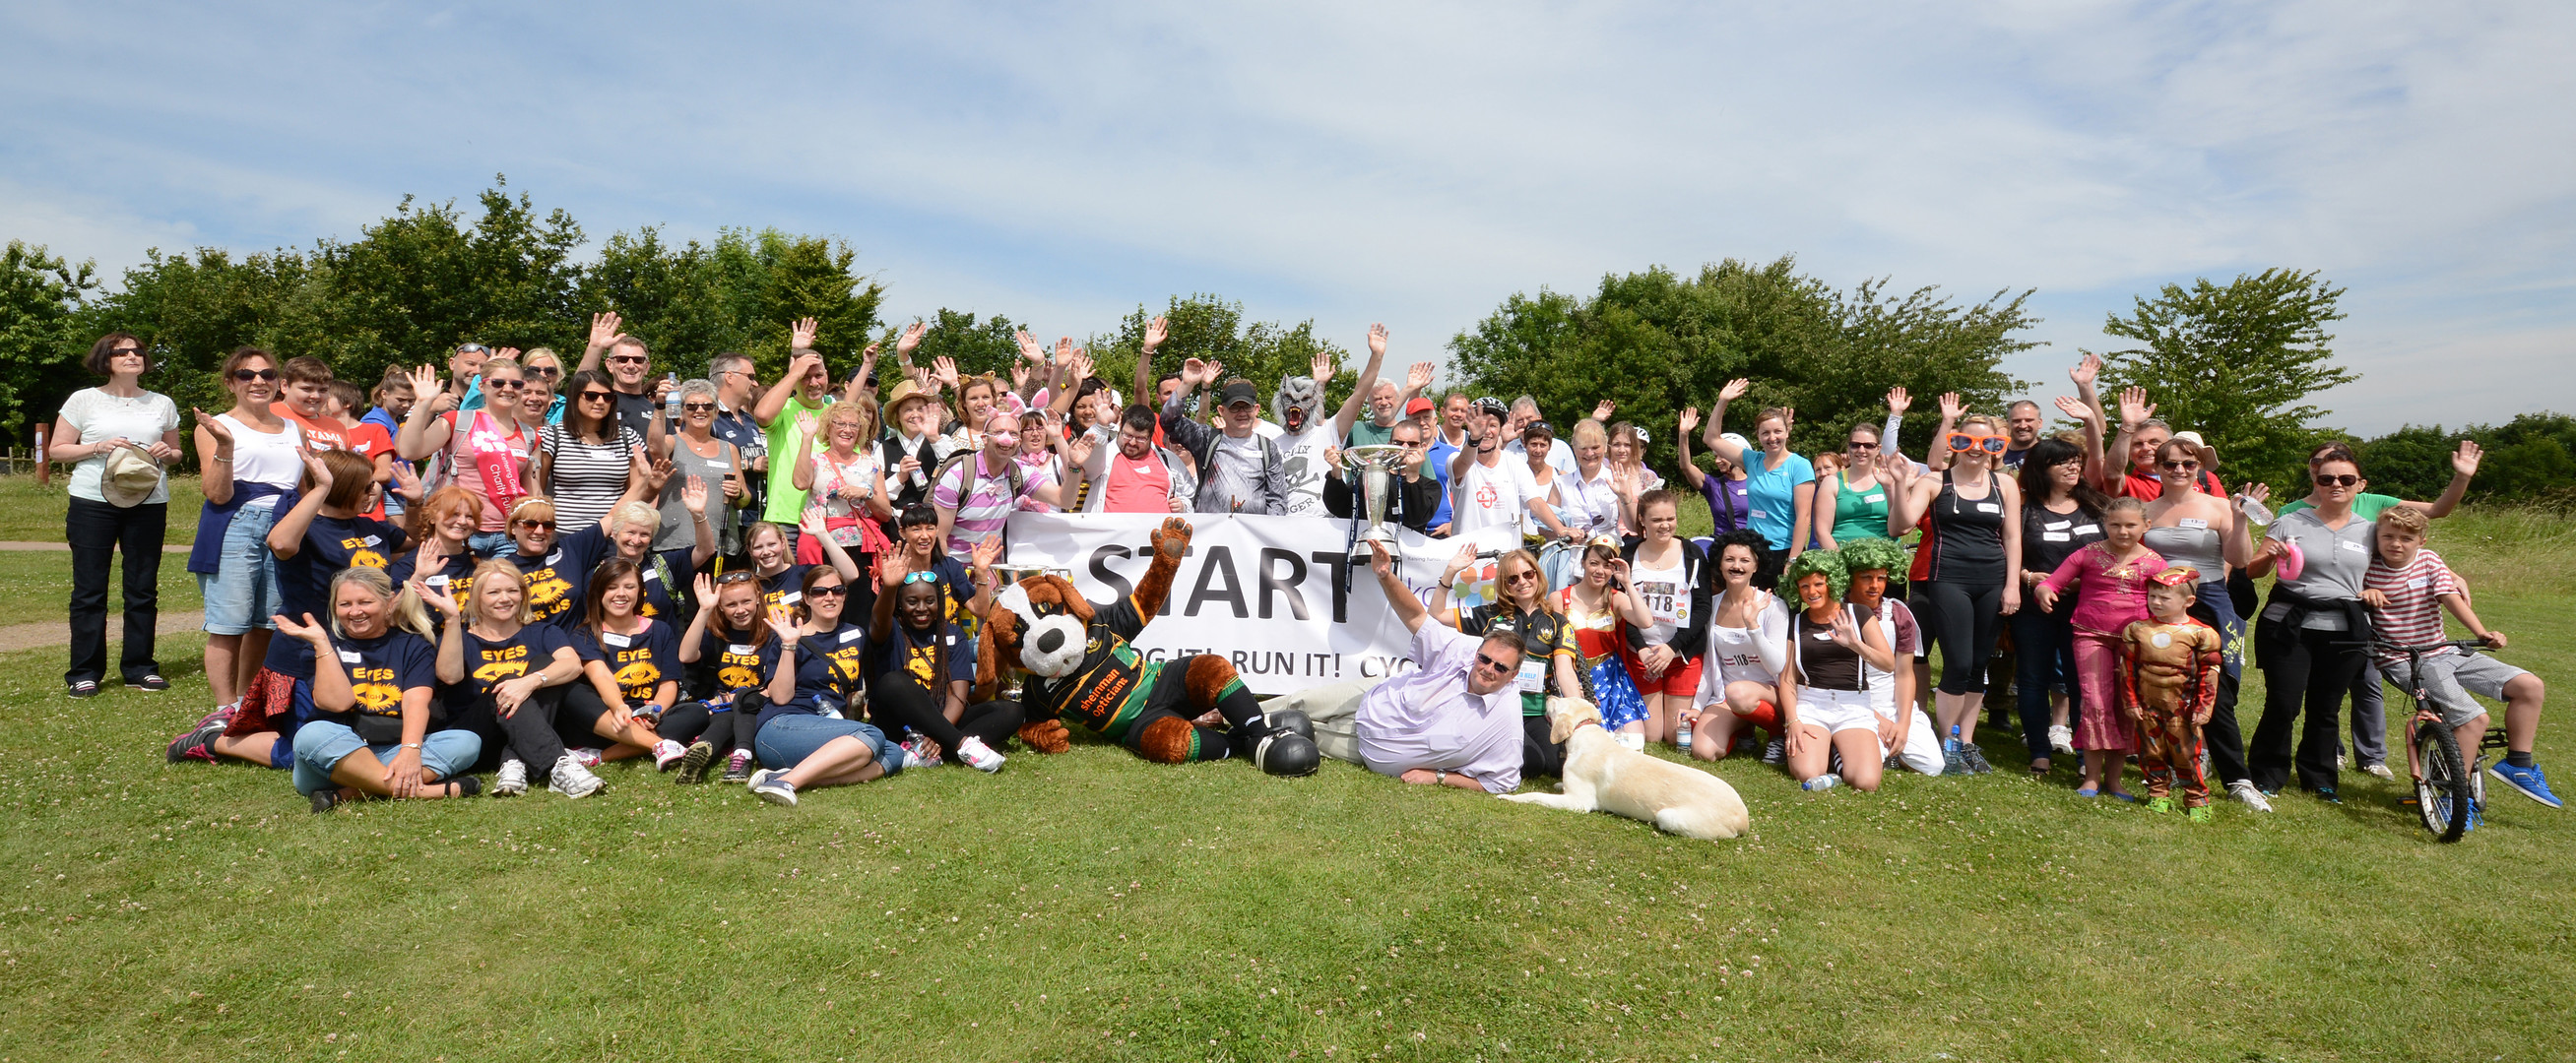 2014: Our 2nd Fun Run event at Pitsford Reservoir, Sunday 6th July 2014, raising an amazing £8241.86